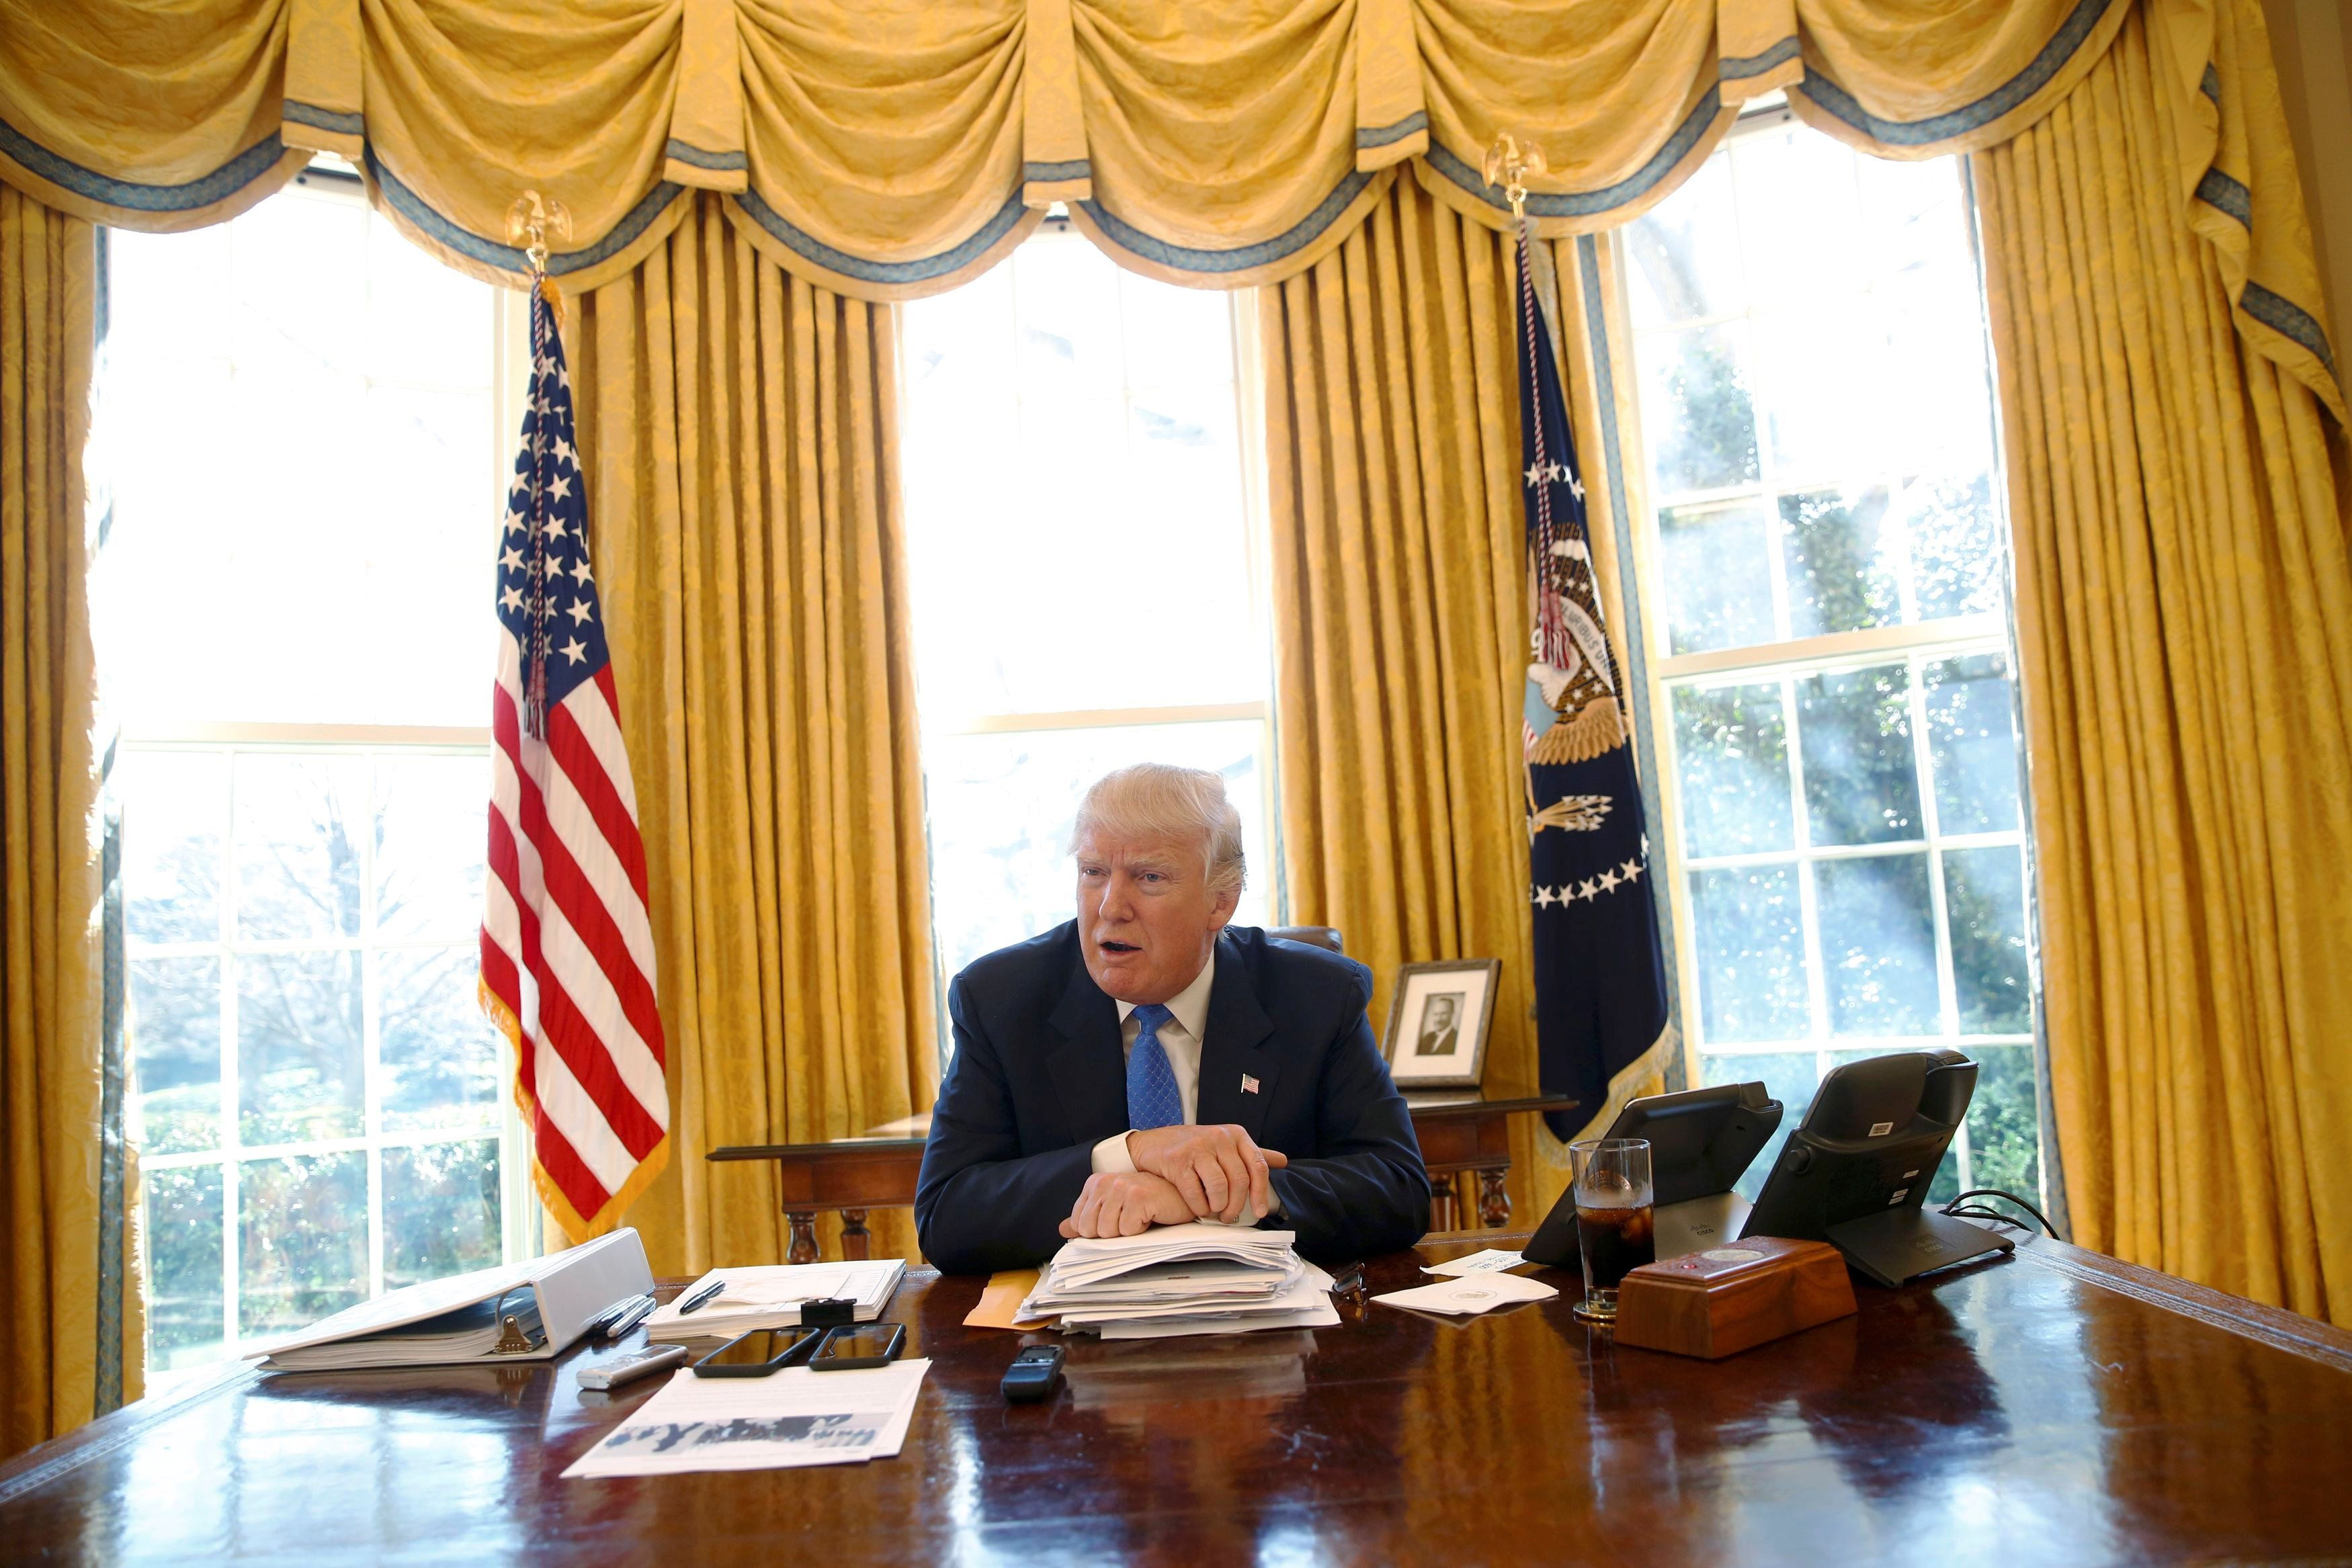 Trump sits at his desk in the White House's Oval Office during an interview in February. An iced...